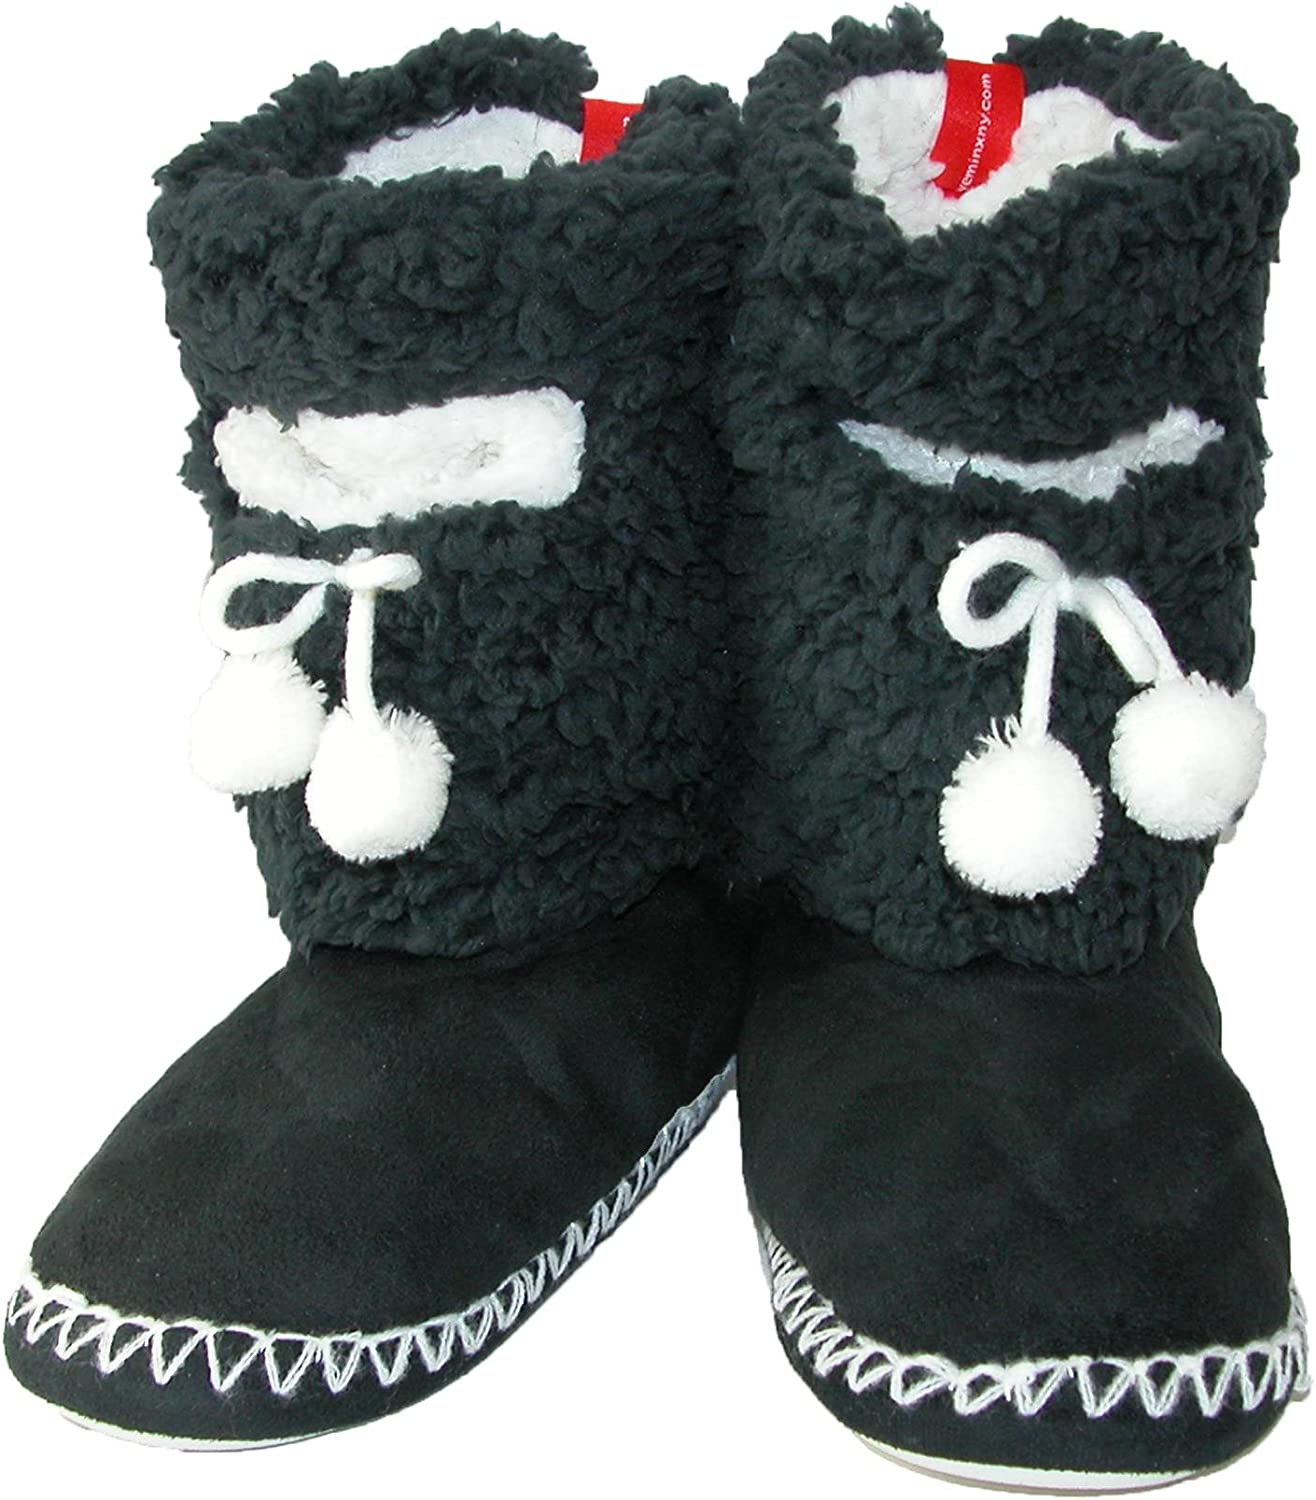 MinxNY Women's Solid color Fuzzy Boot Slippers with Phone Pocket